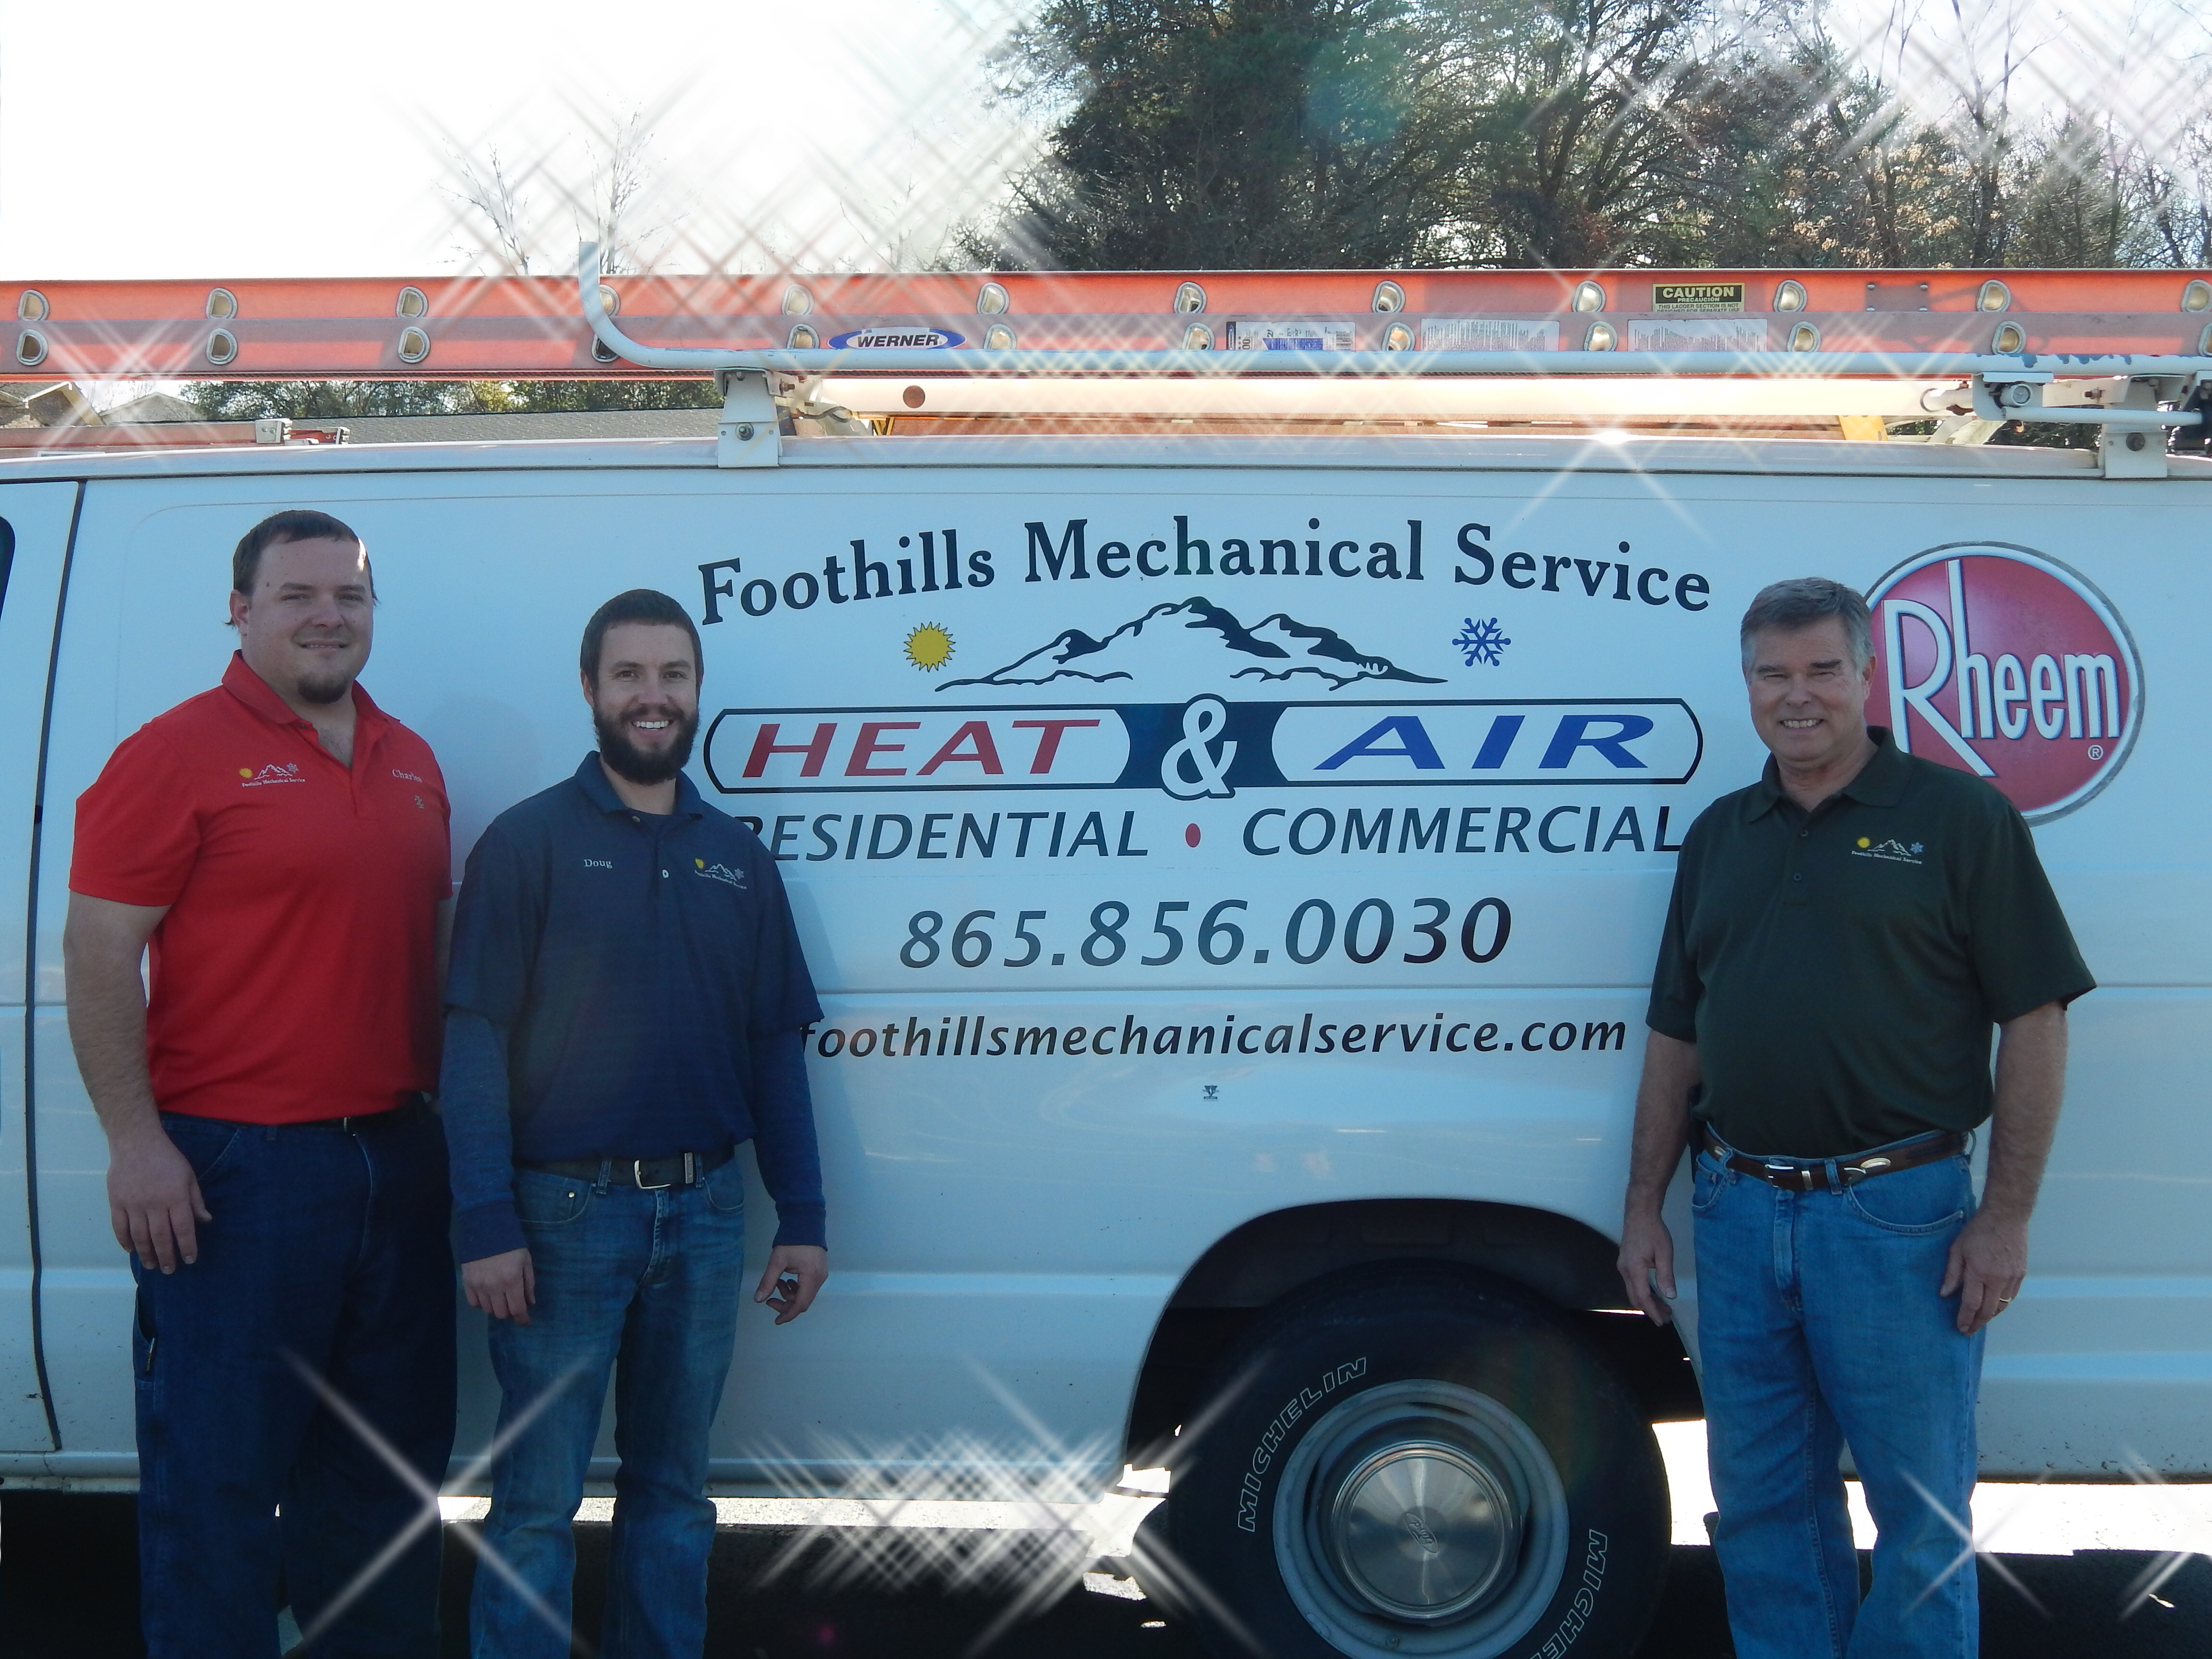 Foothills Mechanical Service image 1